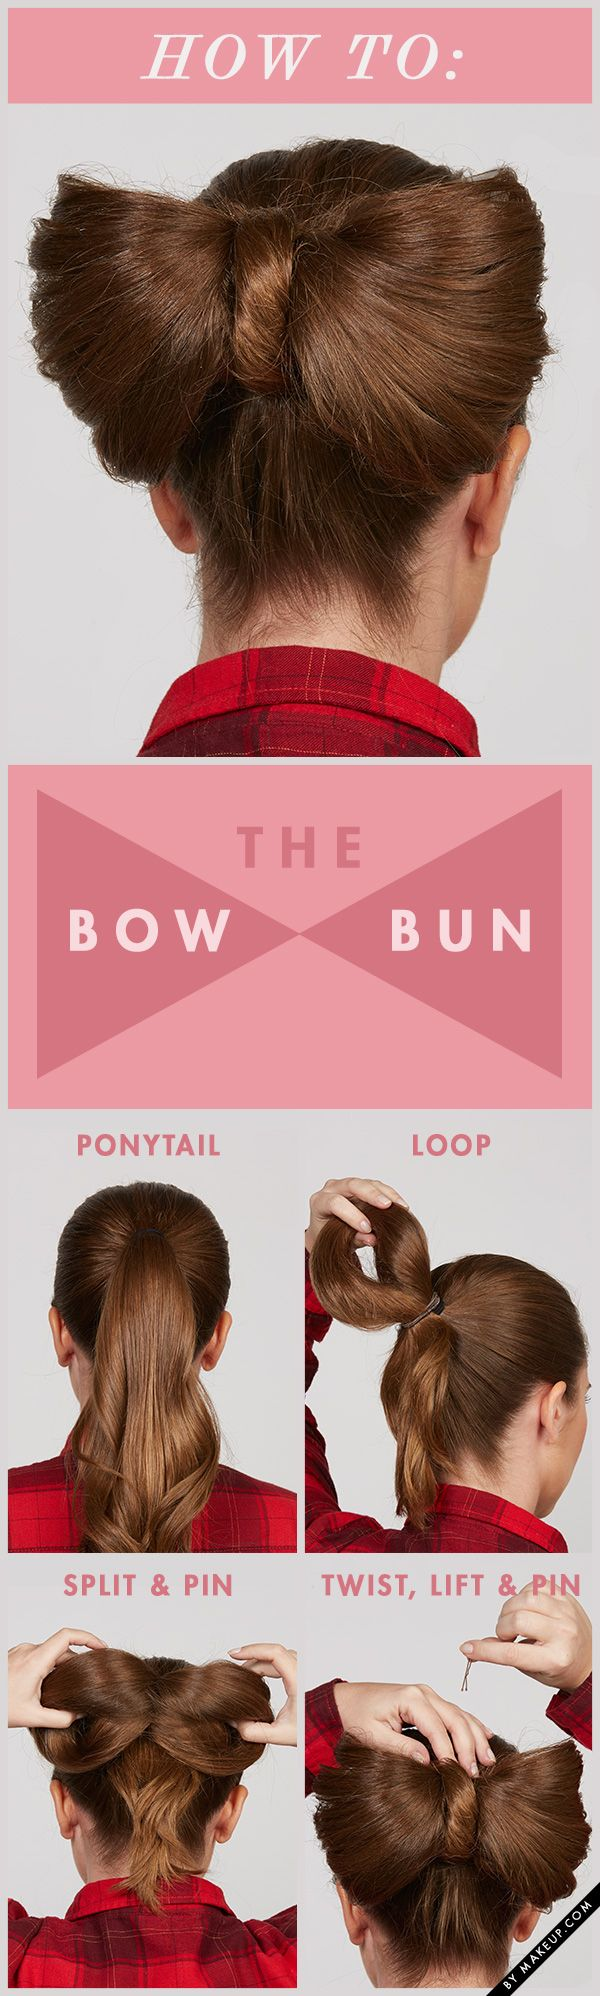 If you have a wedding or a special occasion coming up, try this bow bun hair tut...